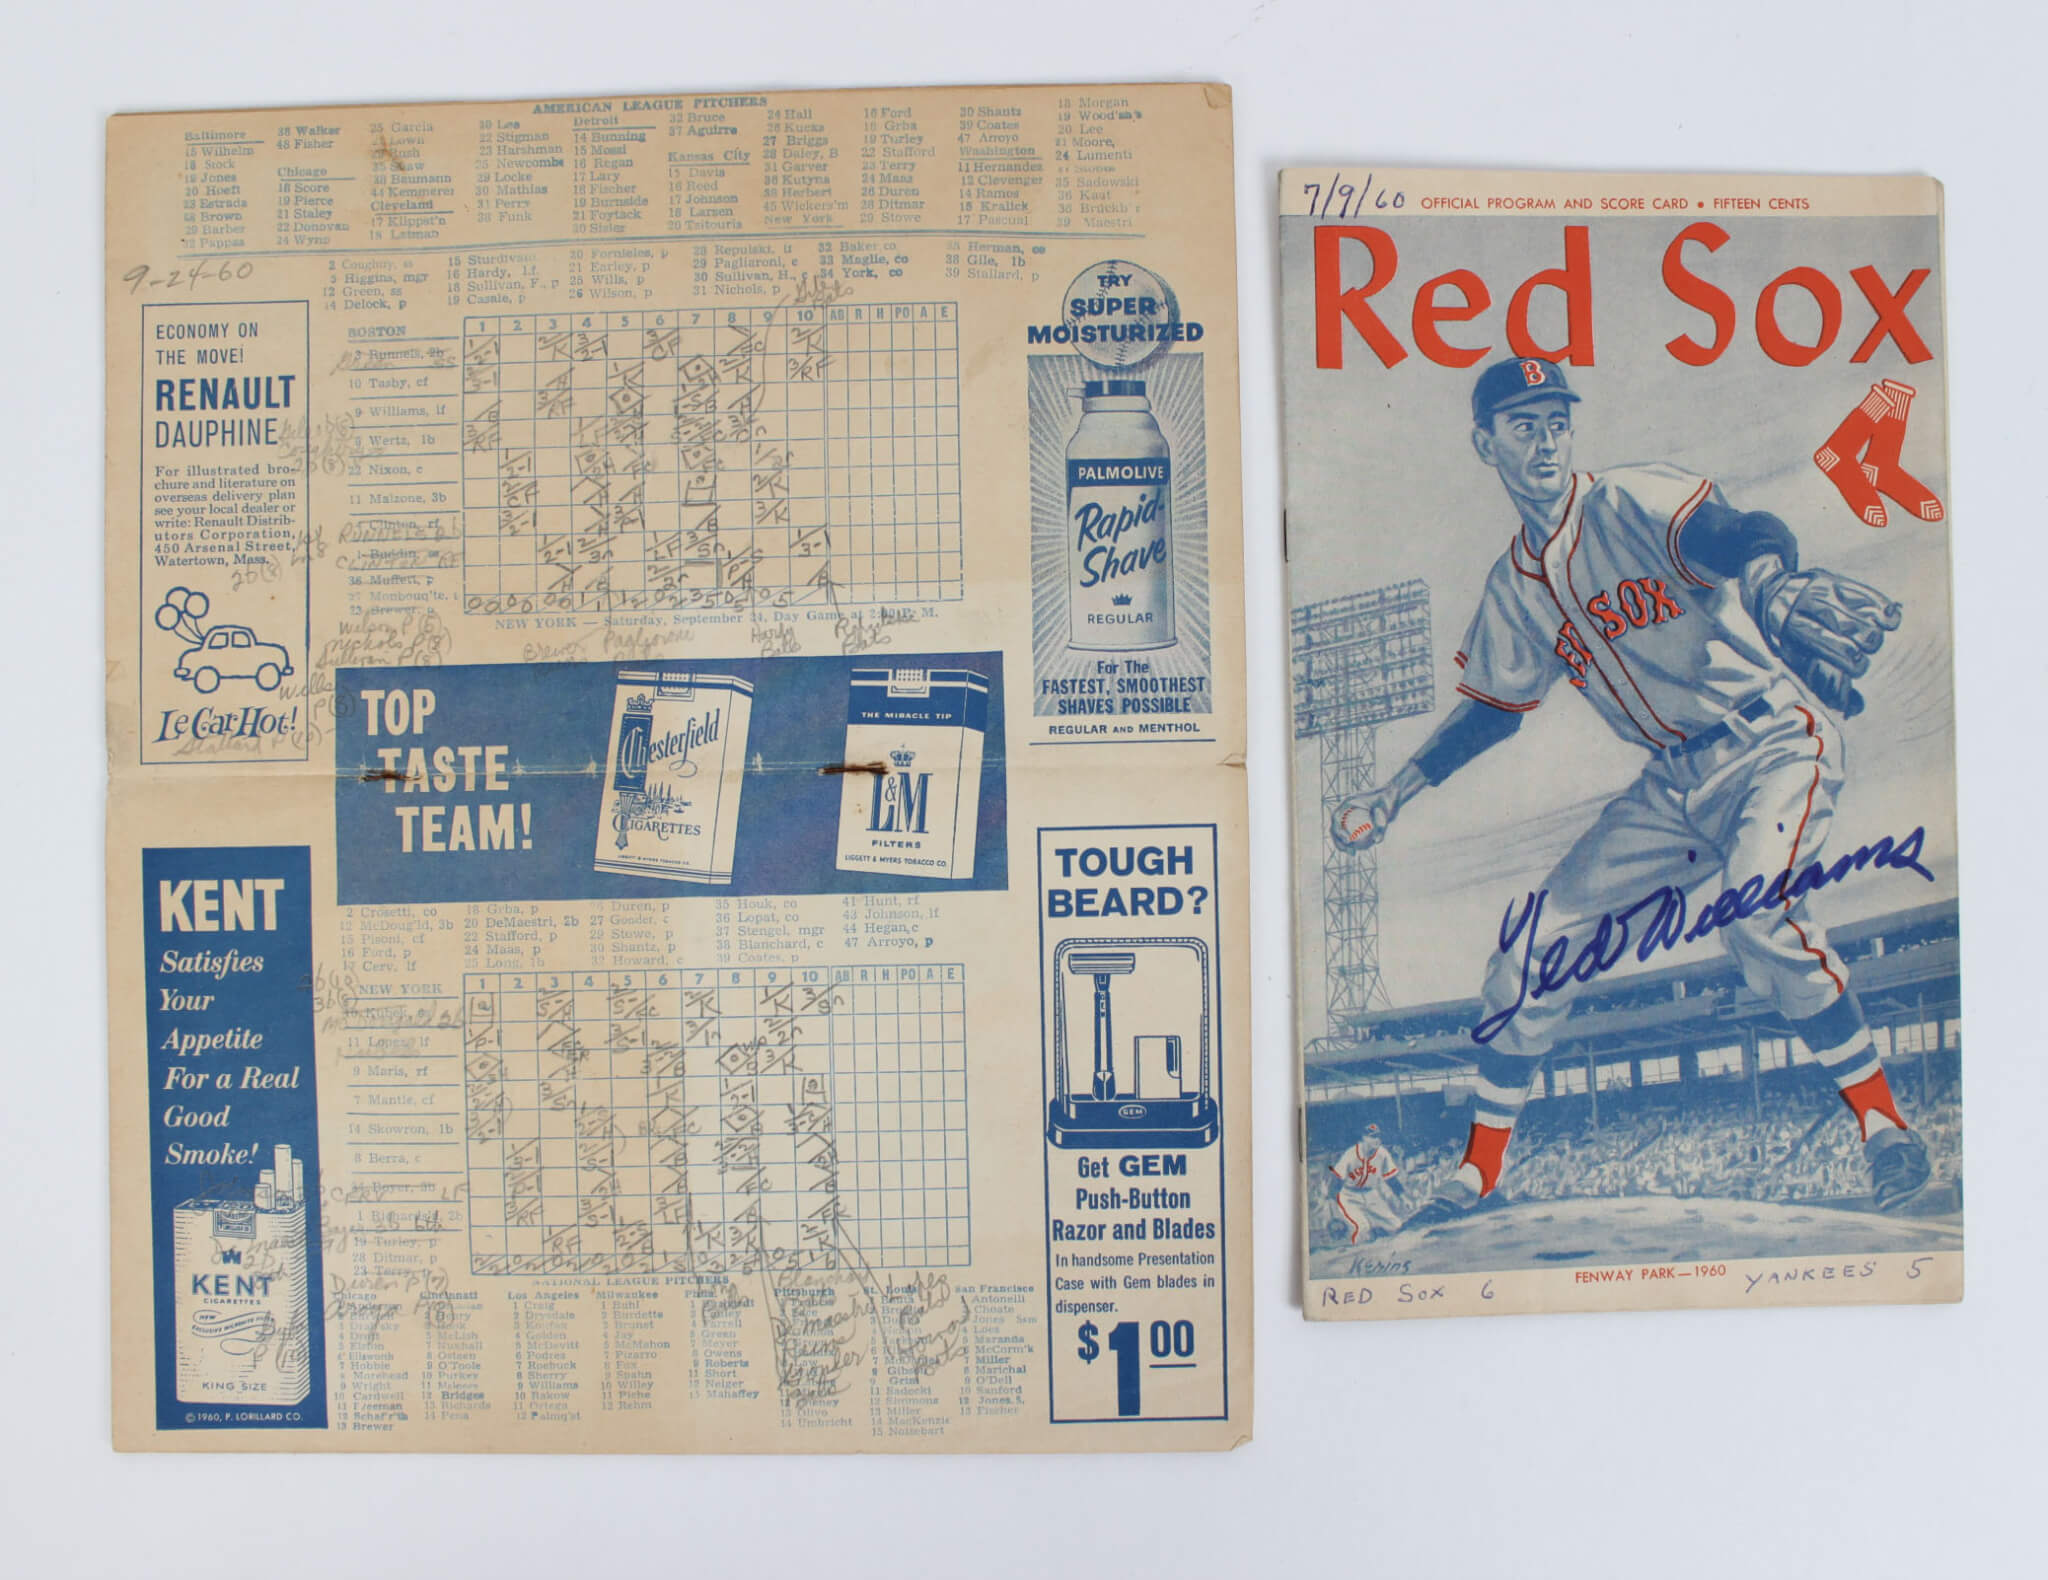 1960 Boston Red Sox Ted Williams Signed Program and Score Card9189_01